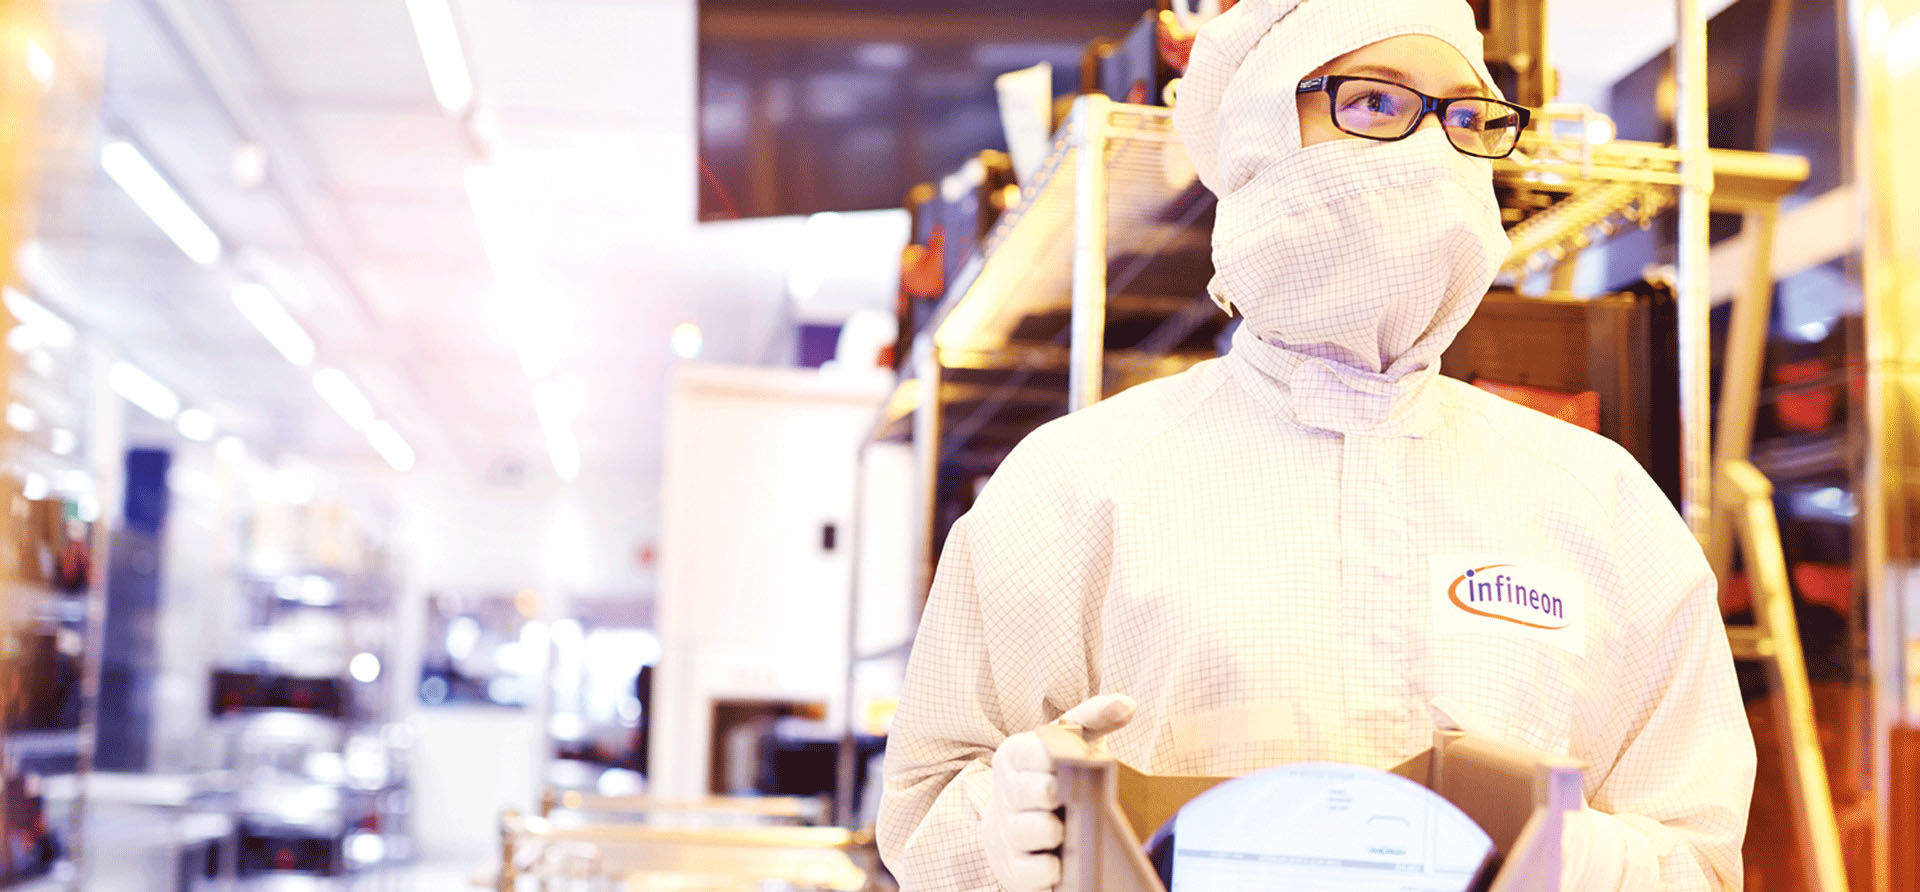 Person with protective mask working in high tech factory